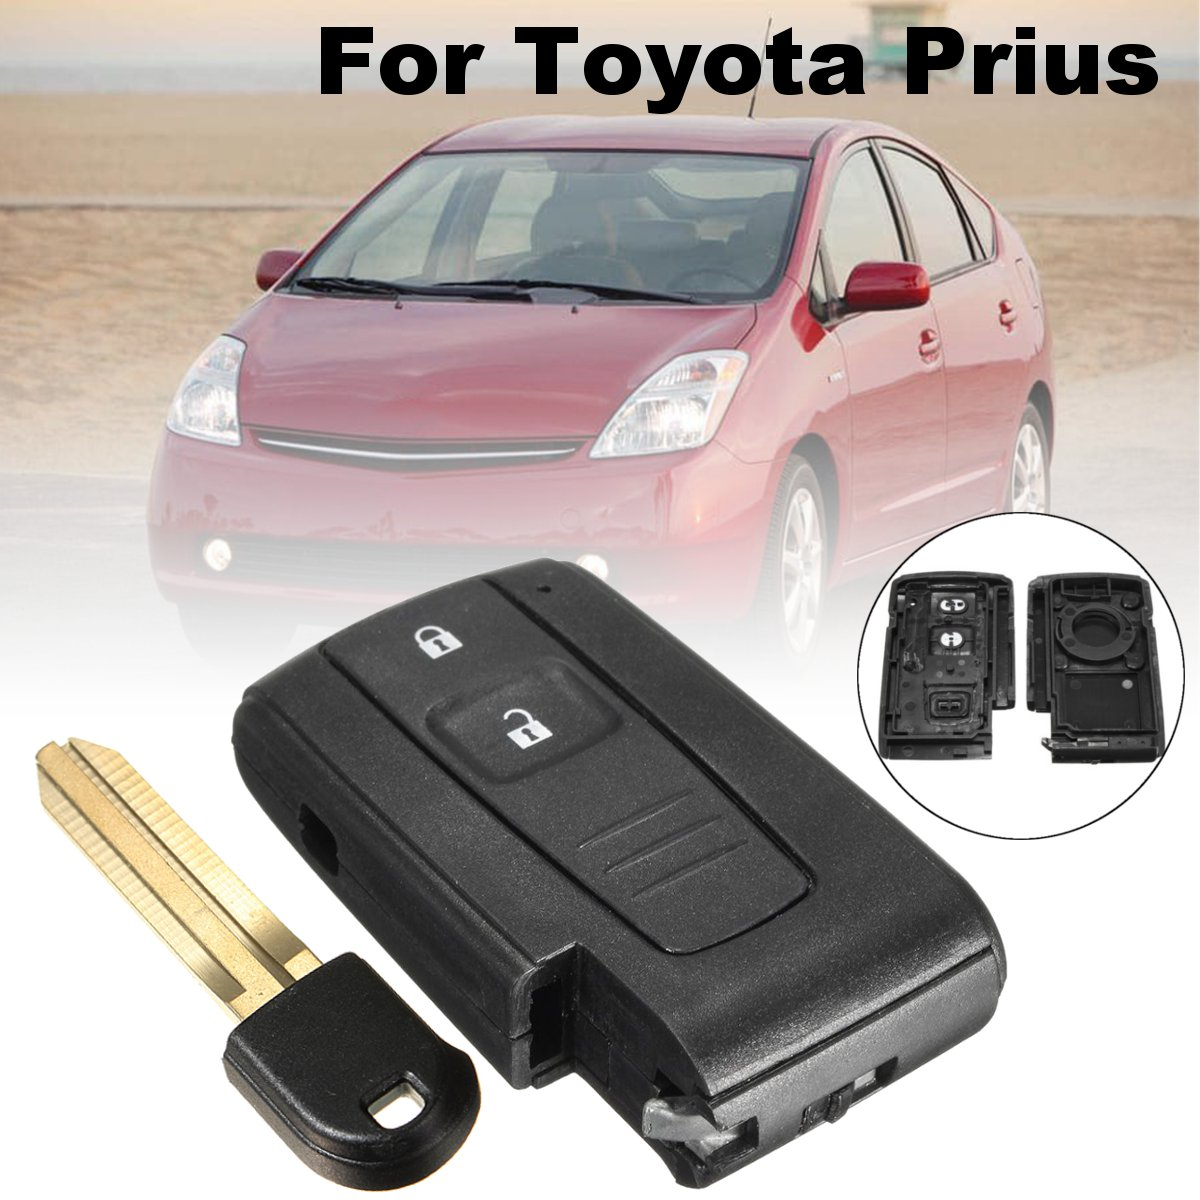 2 Button Car Smart Keyless Remote Key Case Shell with Toy43 Blade For Toyota <font><b>Prius</b></font> 2004 <font><b>2005</b></font> 2006 2007 2008 2009 #MOZB31EG image